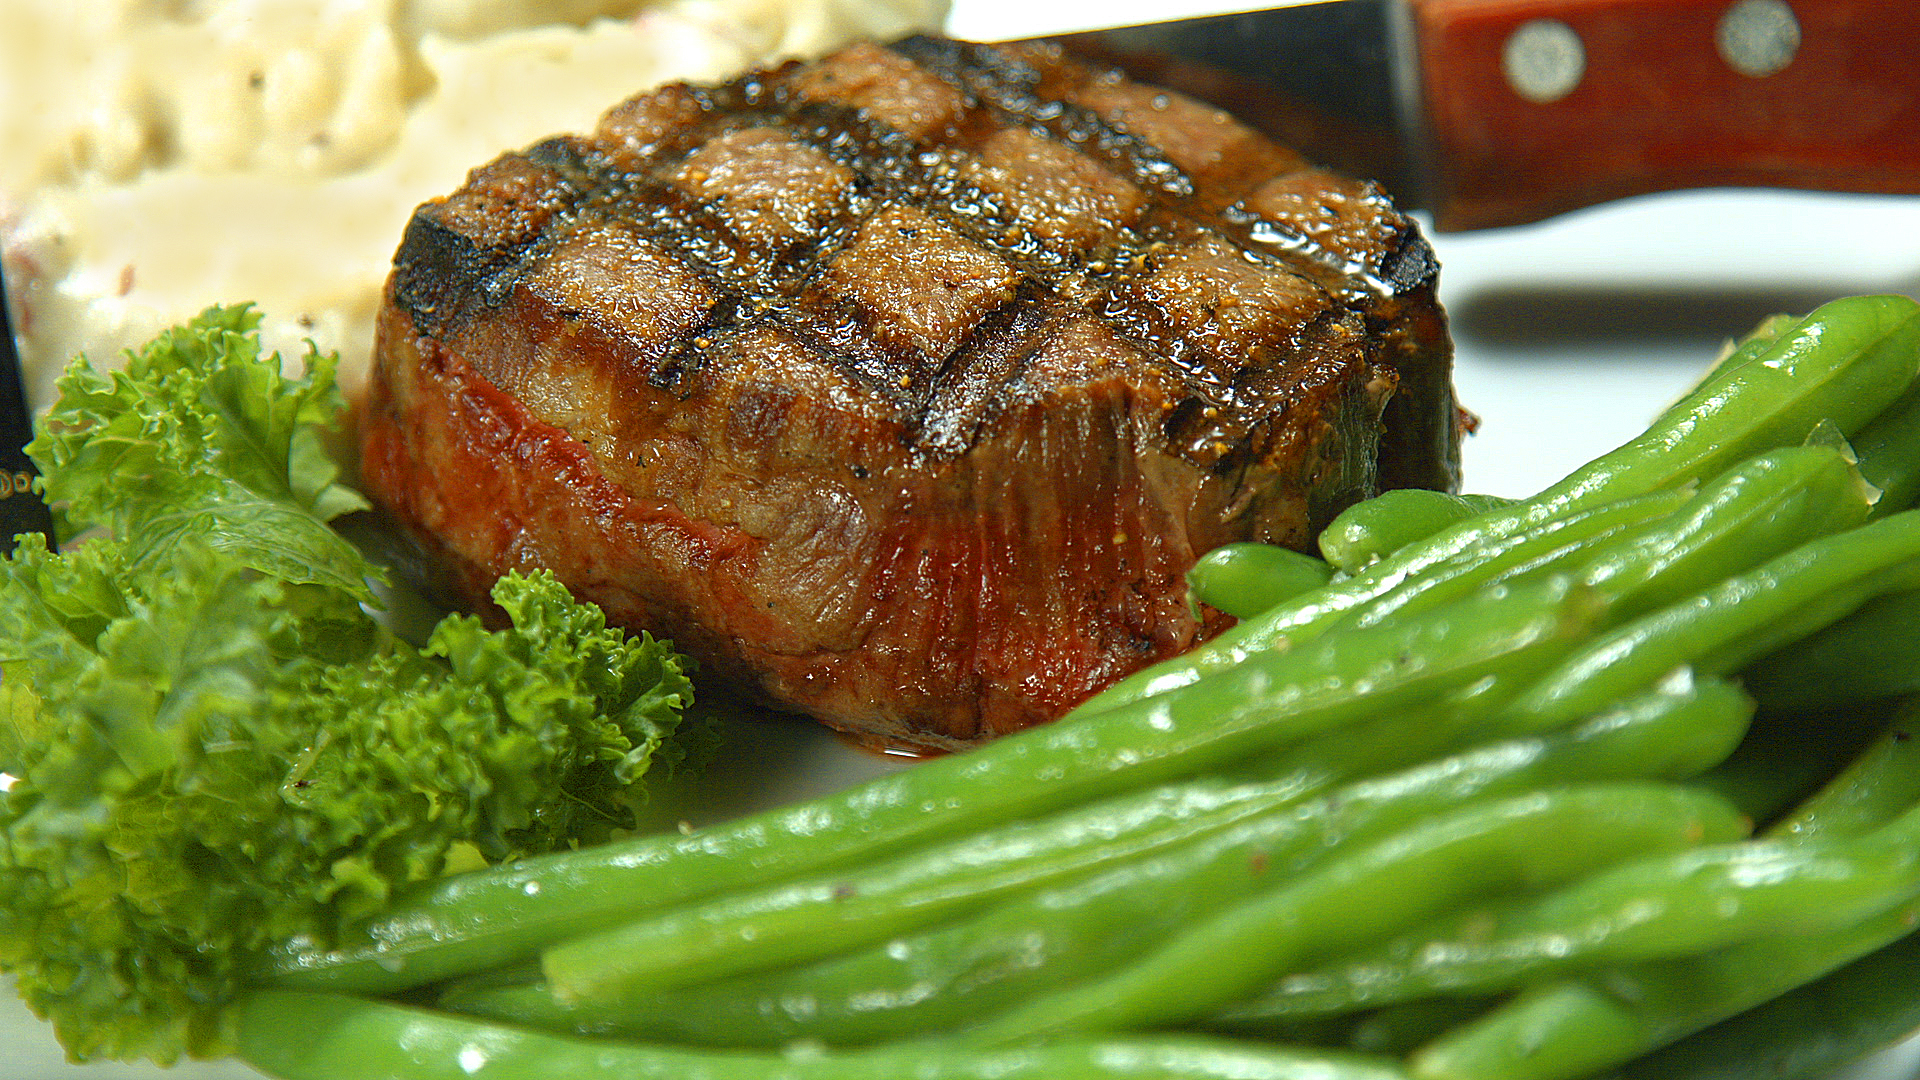 steak with green beans on the side